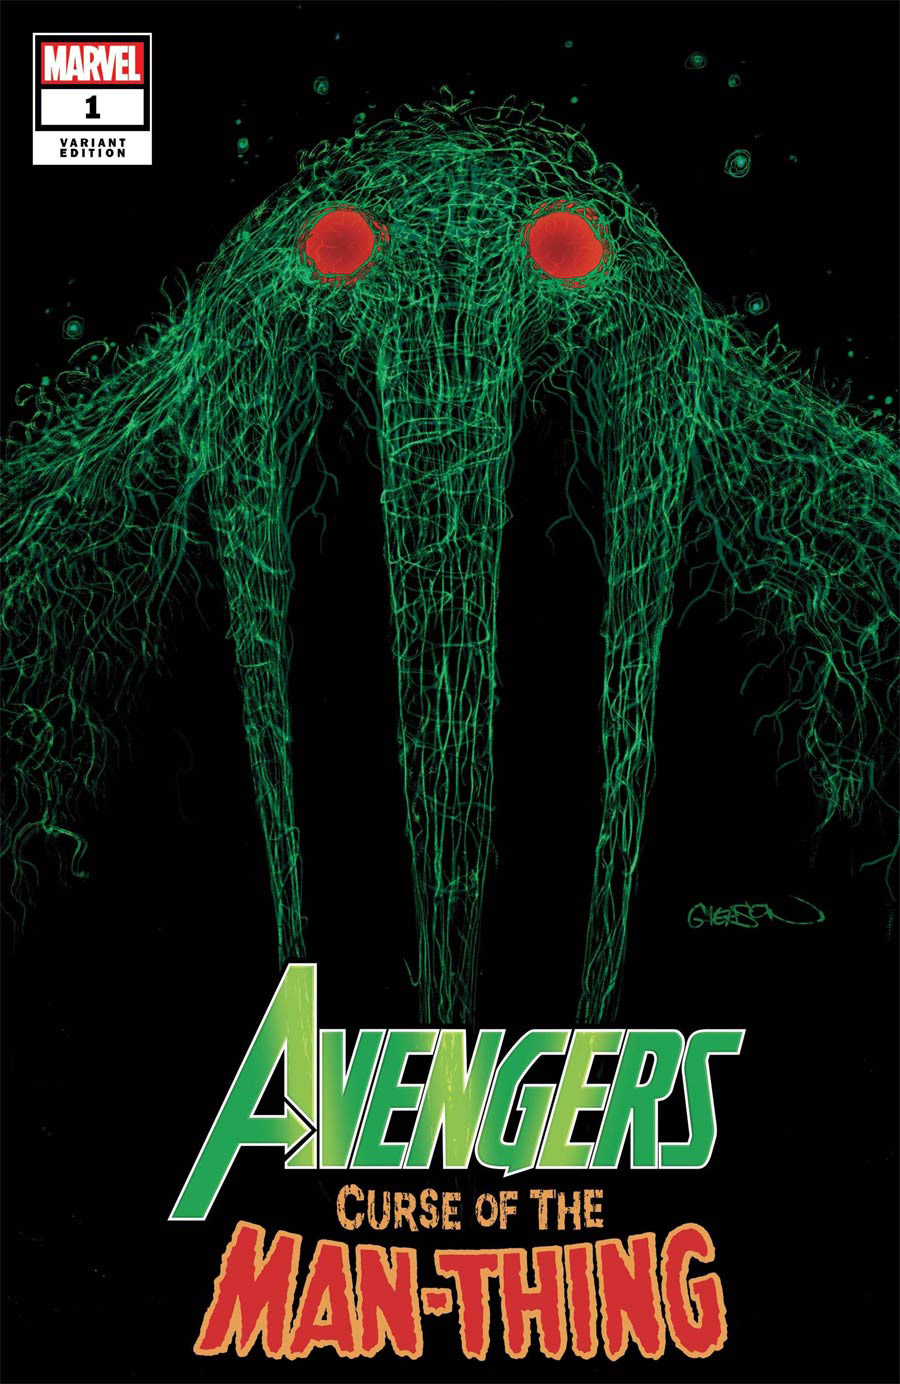 Avengers Curse Of The Man-Thing #1 (One Shot) Cover D Variant Patrick Gleason Webhead Cover